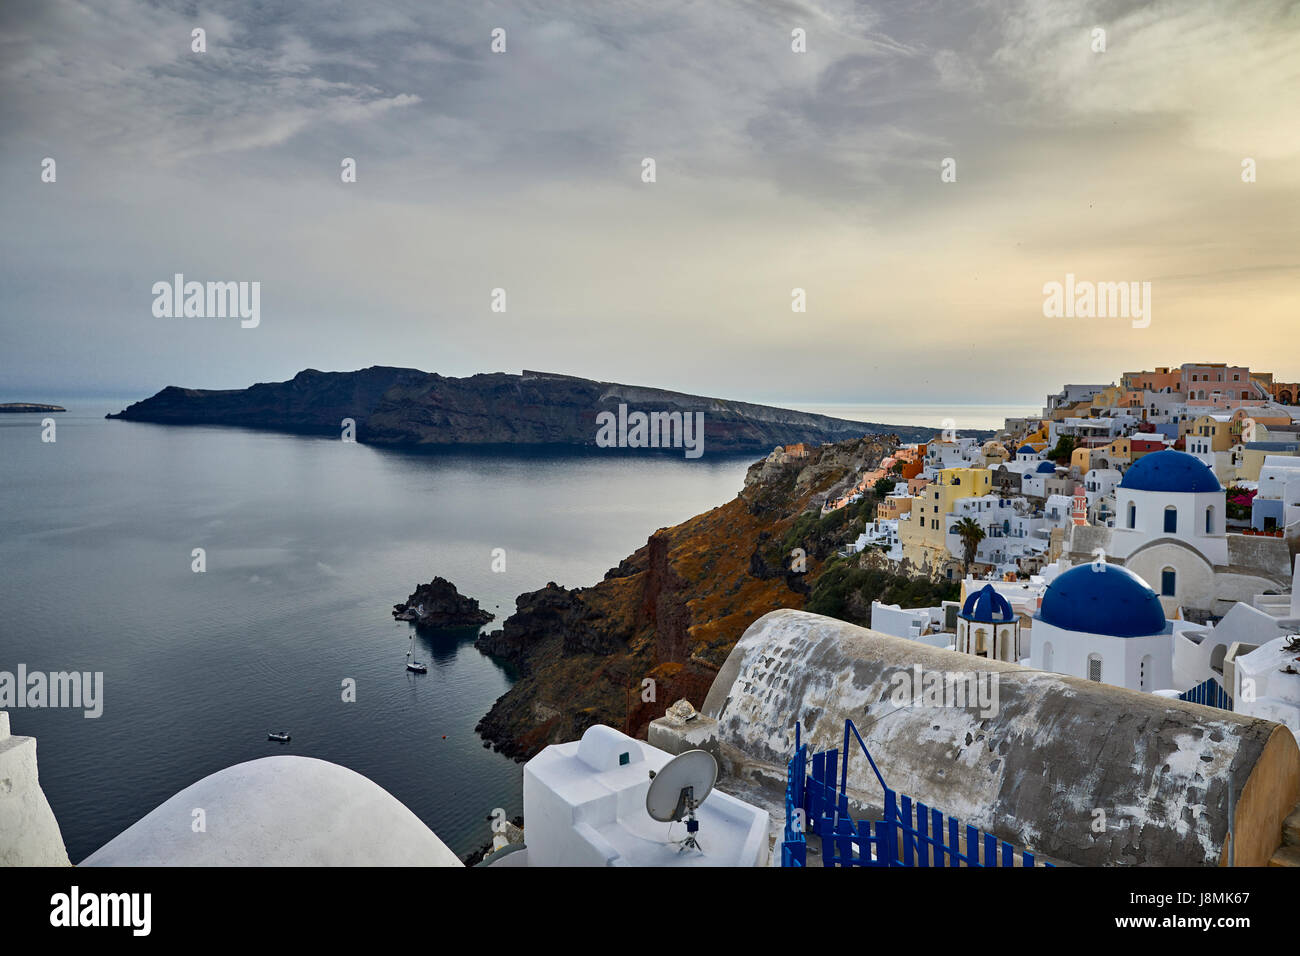 Volcanic Greek island Santorini one of the Cyclades islands in the Aegean Sea.  Oia area - Stock Image